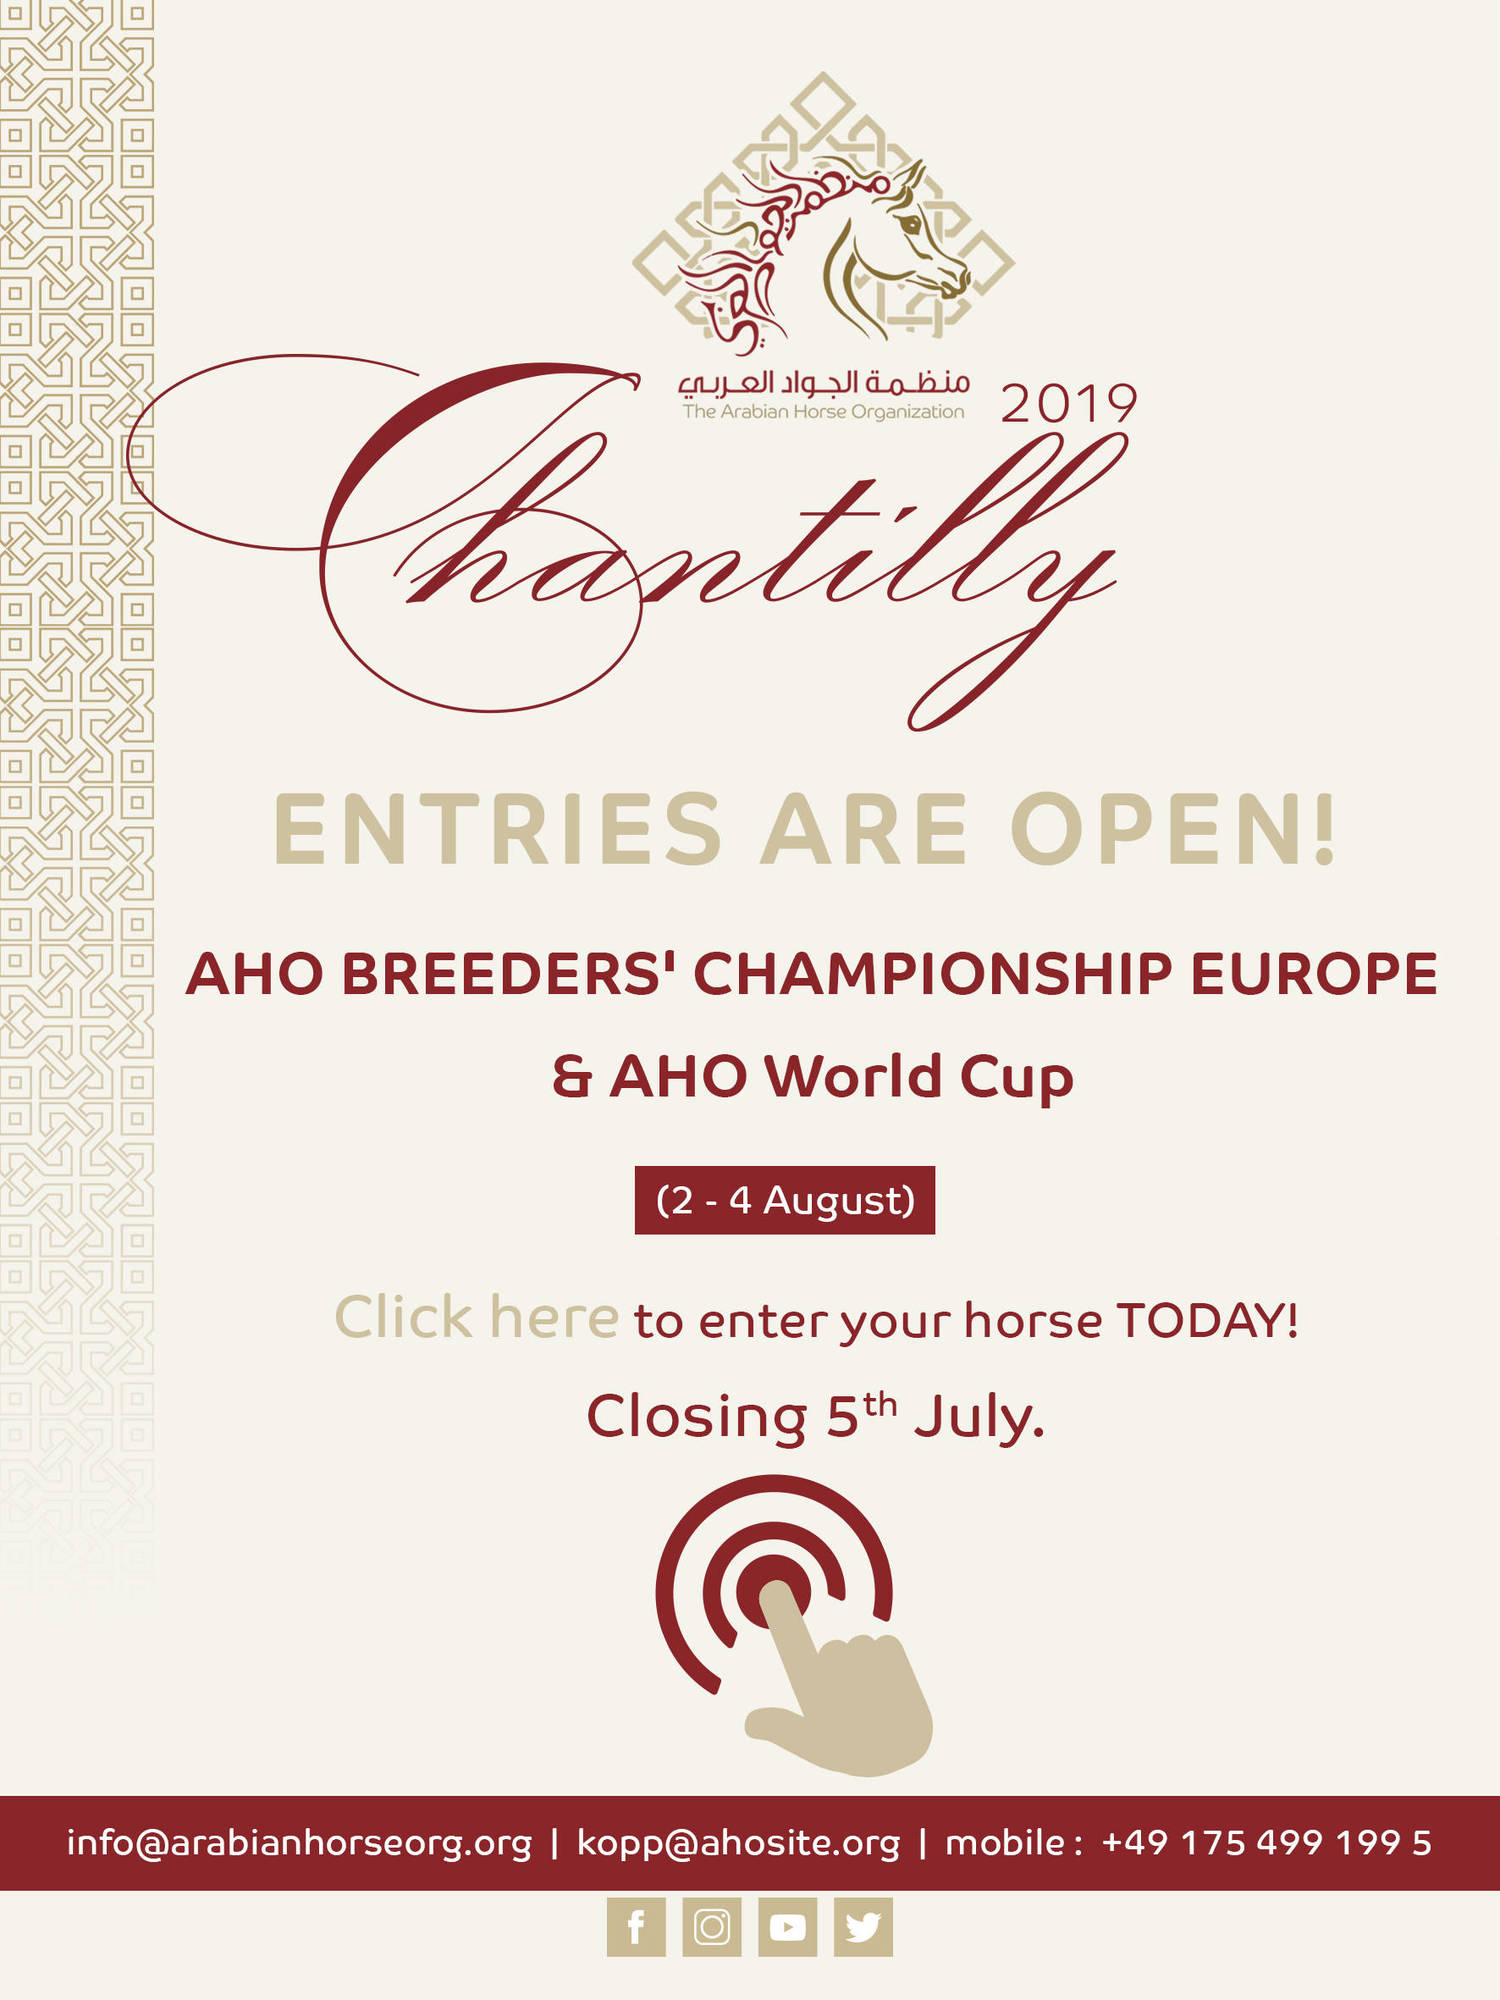 ENTER YOUR HORSE TODAY - CHANTILLY 2019